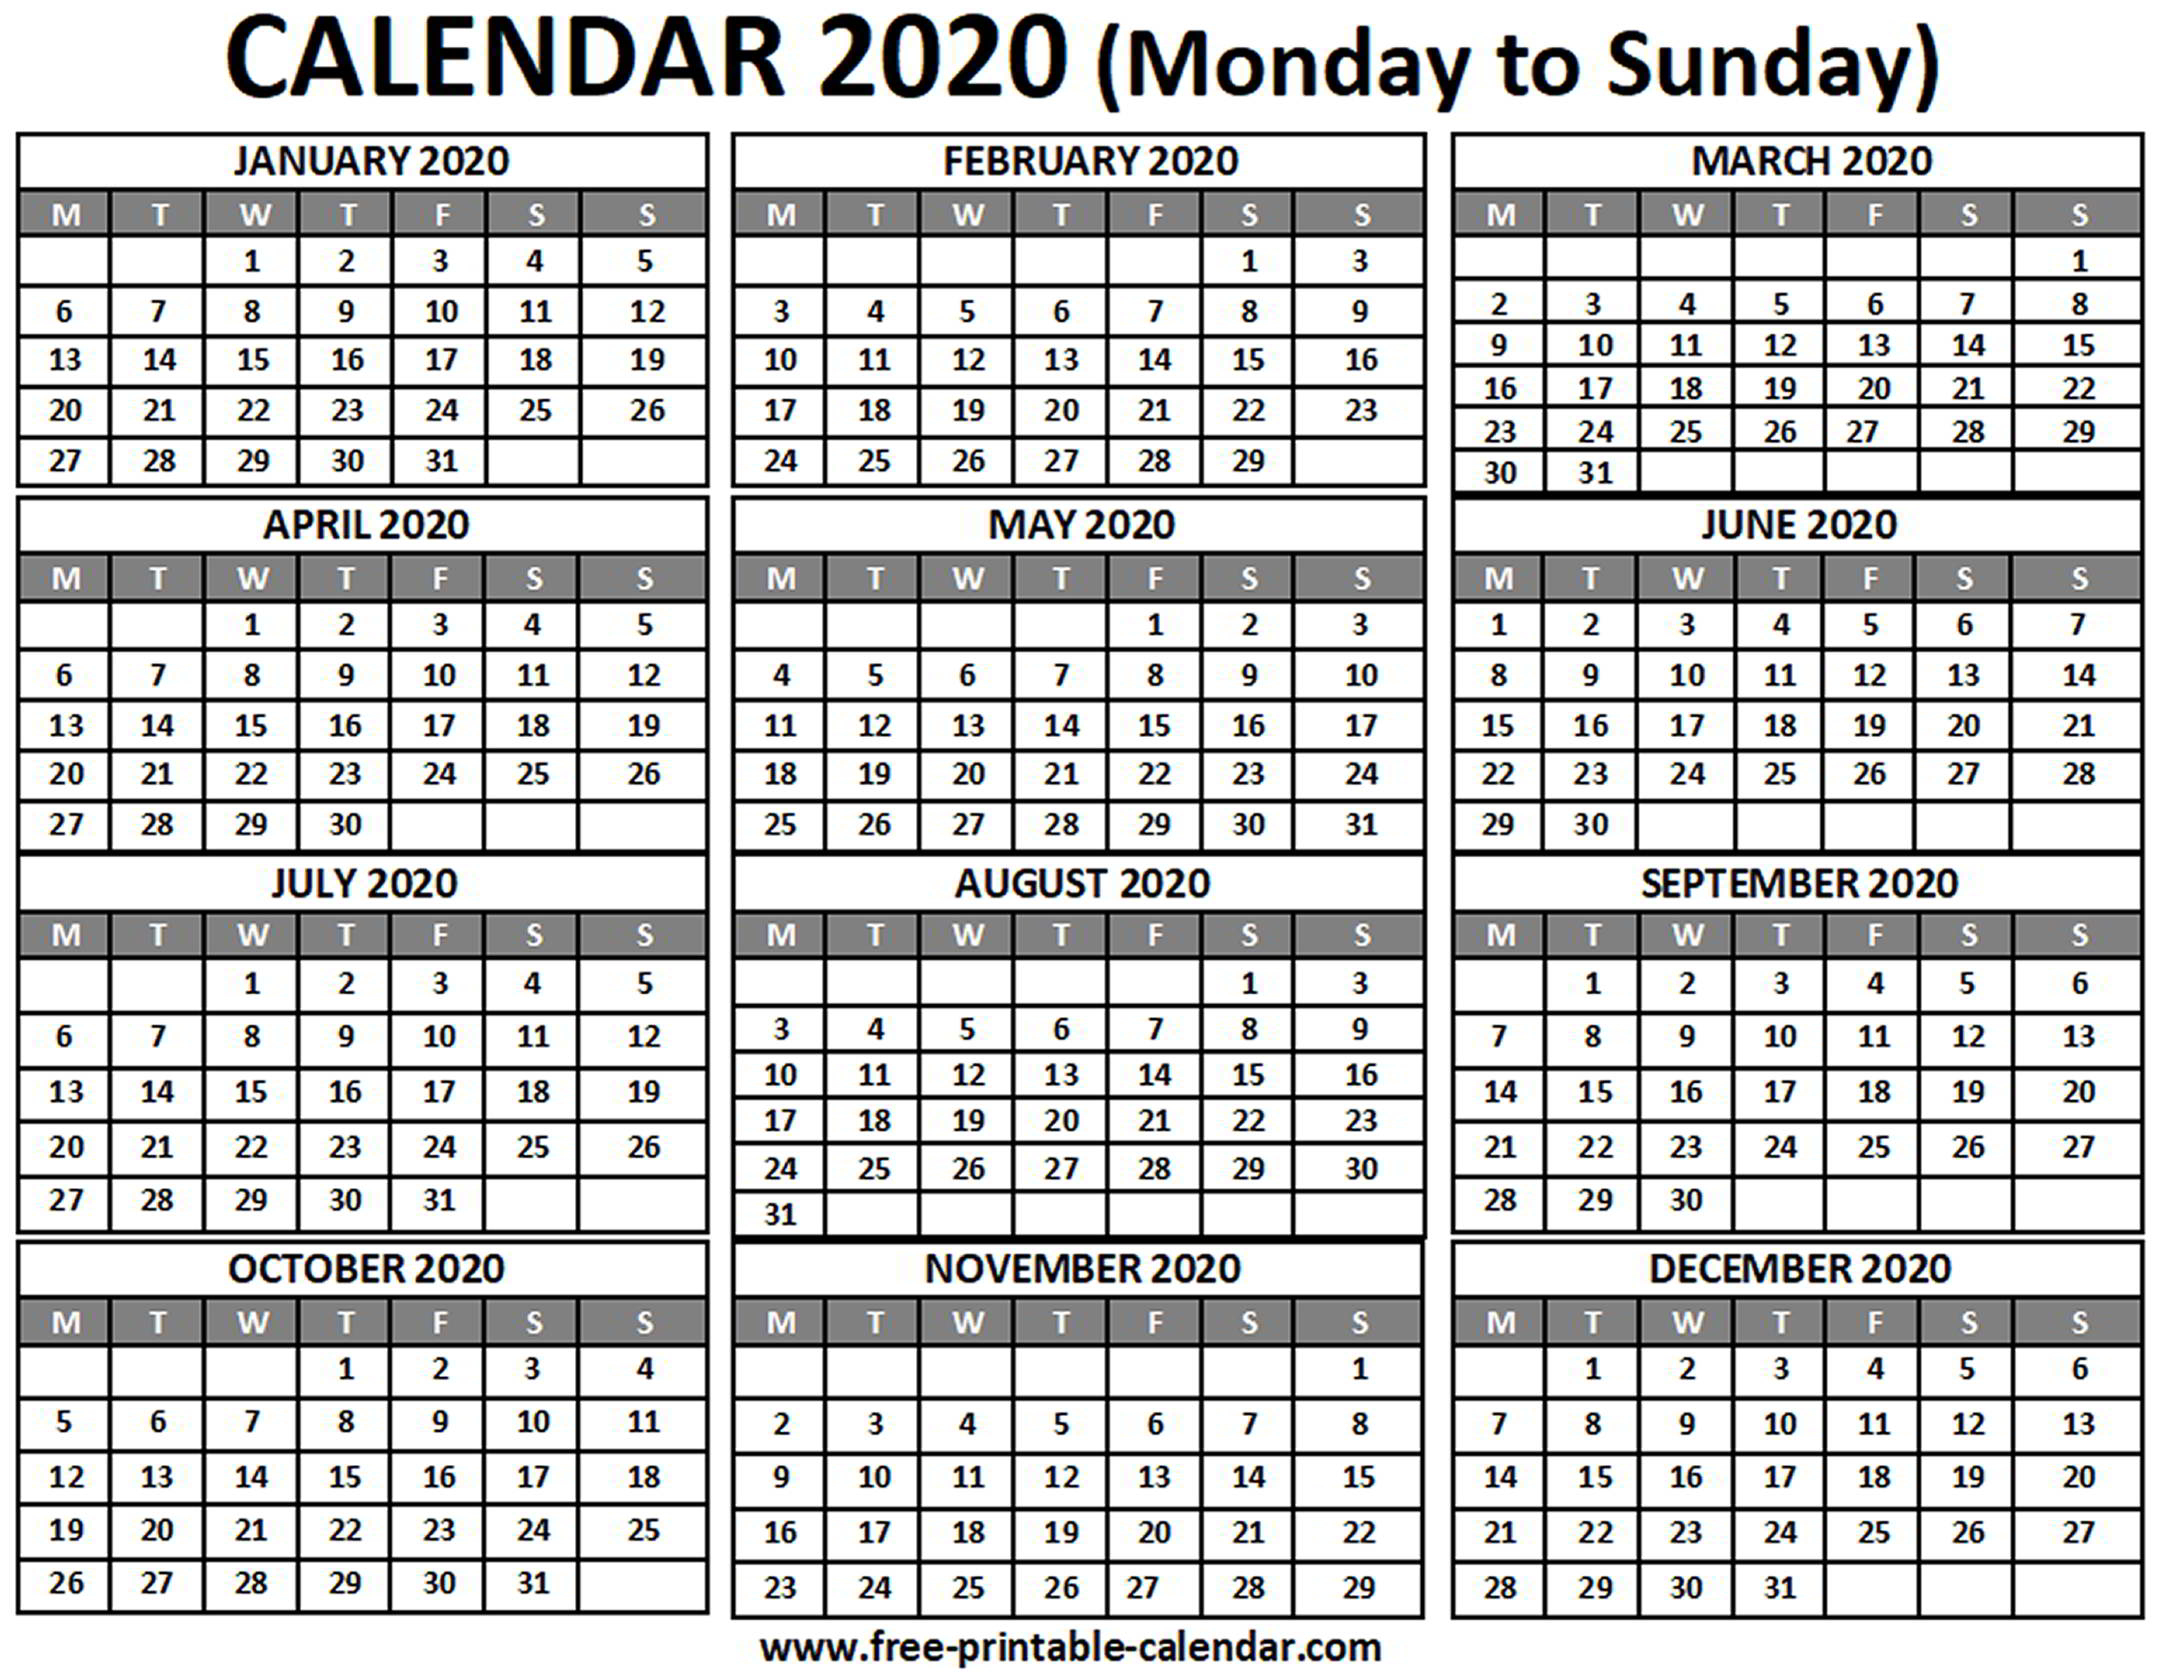 2020 Calendar - Free-Printable-Calendar inside Free Calendars 2020 Start With Monday